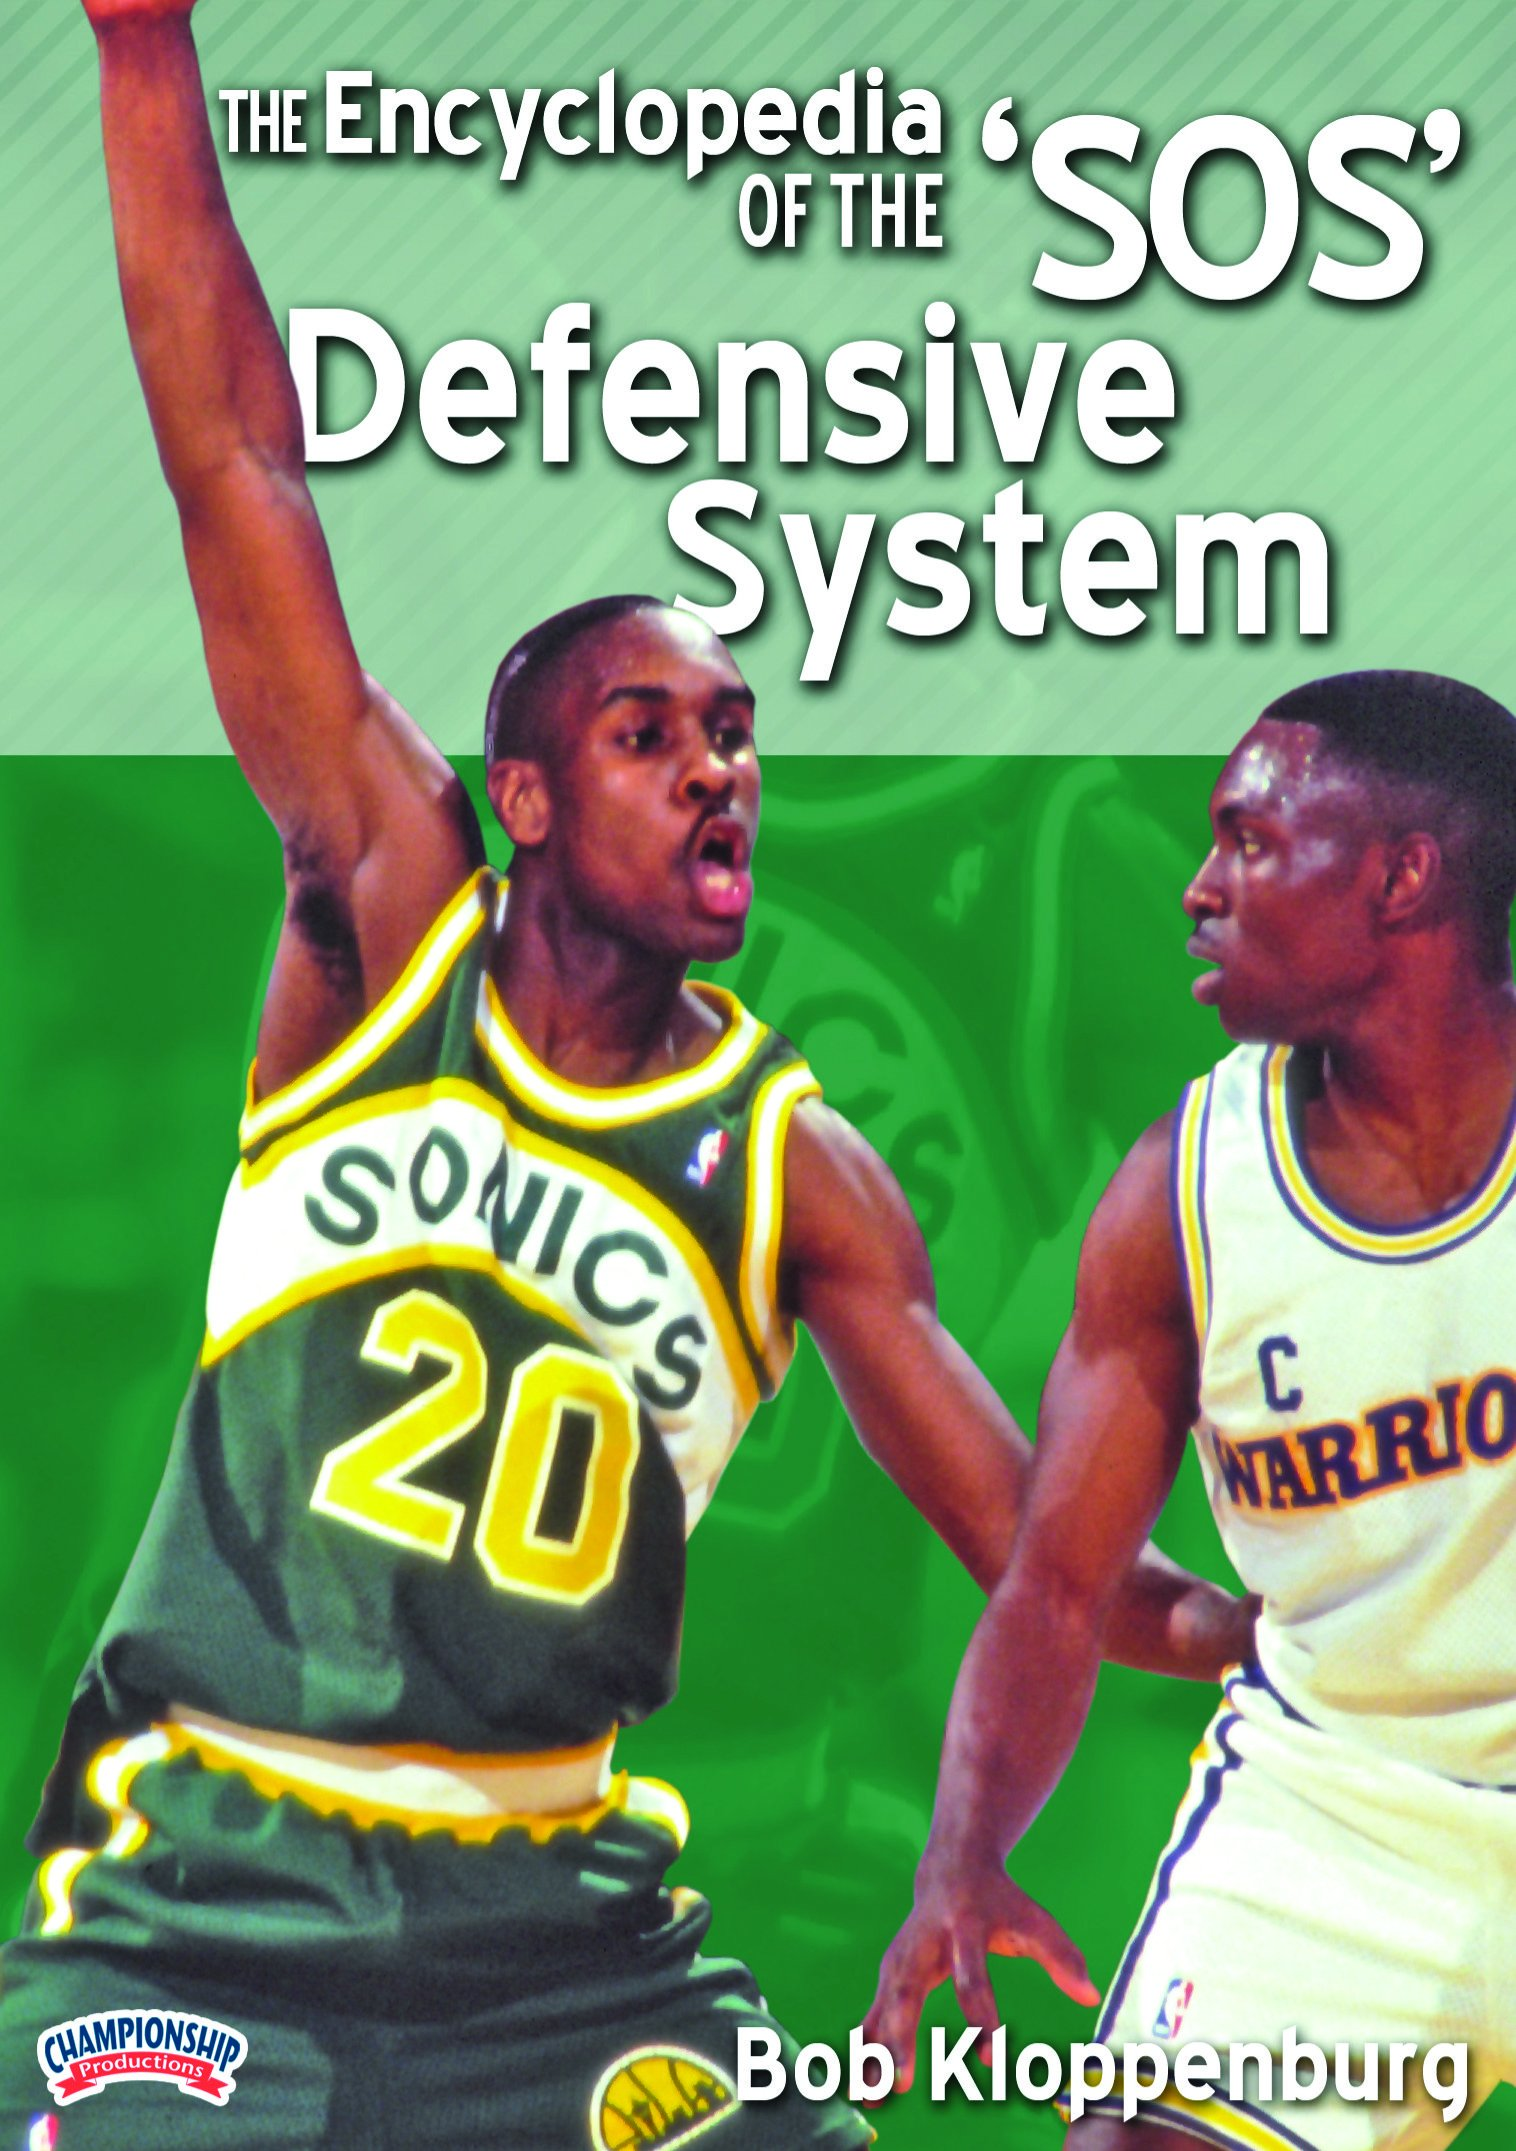 Championship Productions Bob Kloppenburg: The Encyclopedia of the ''SOS'' Defensive System DVD by Championship Productions (Image #1)